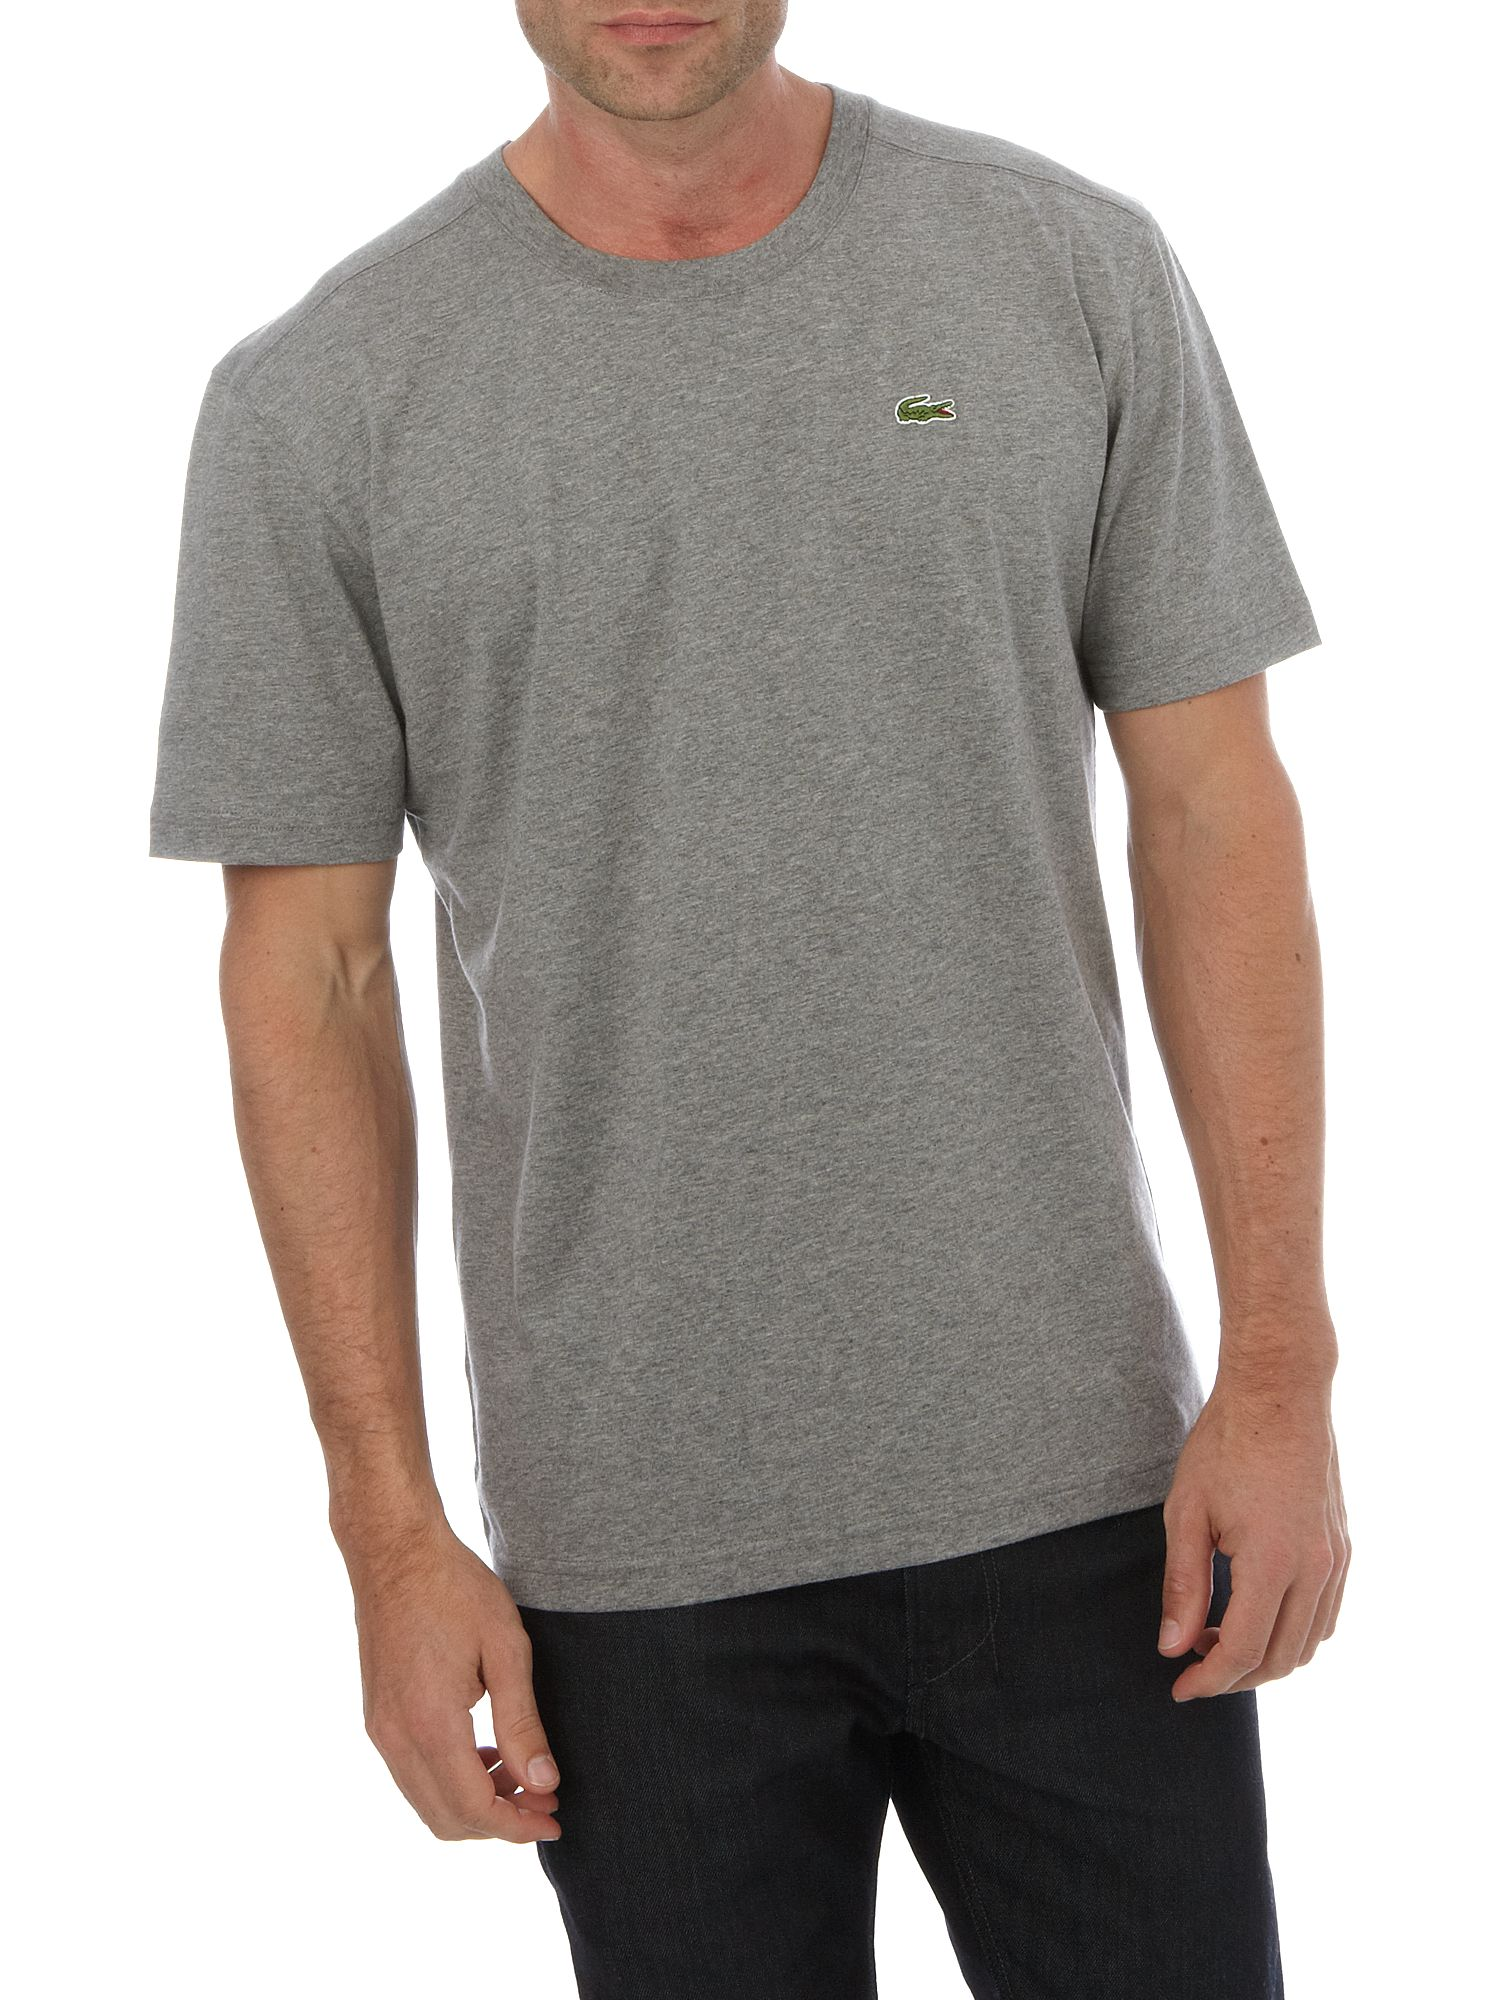 Lacoste Short sleeve basic T-shirt Grey product image